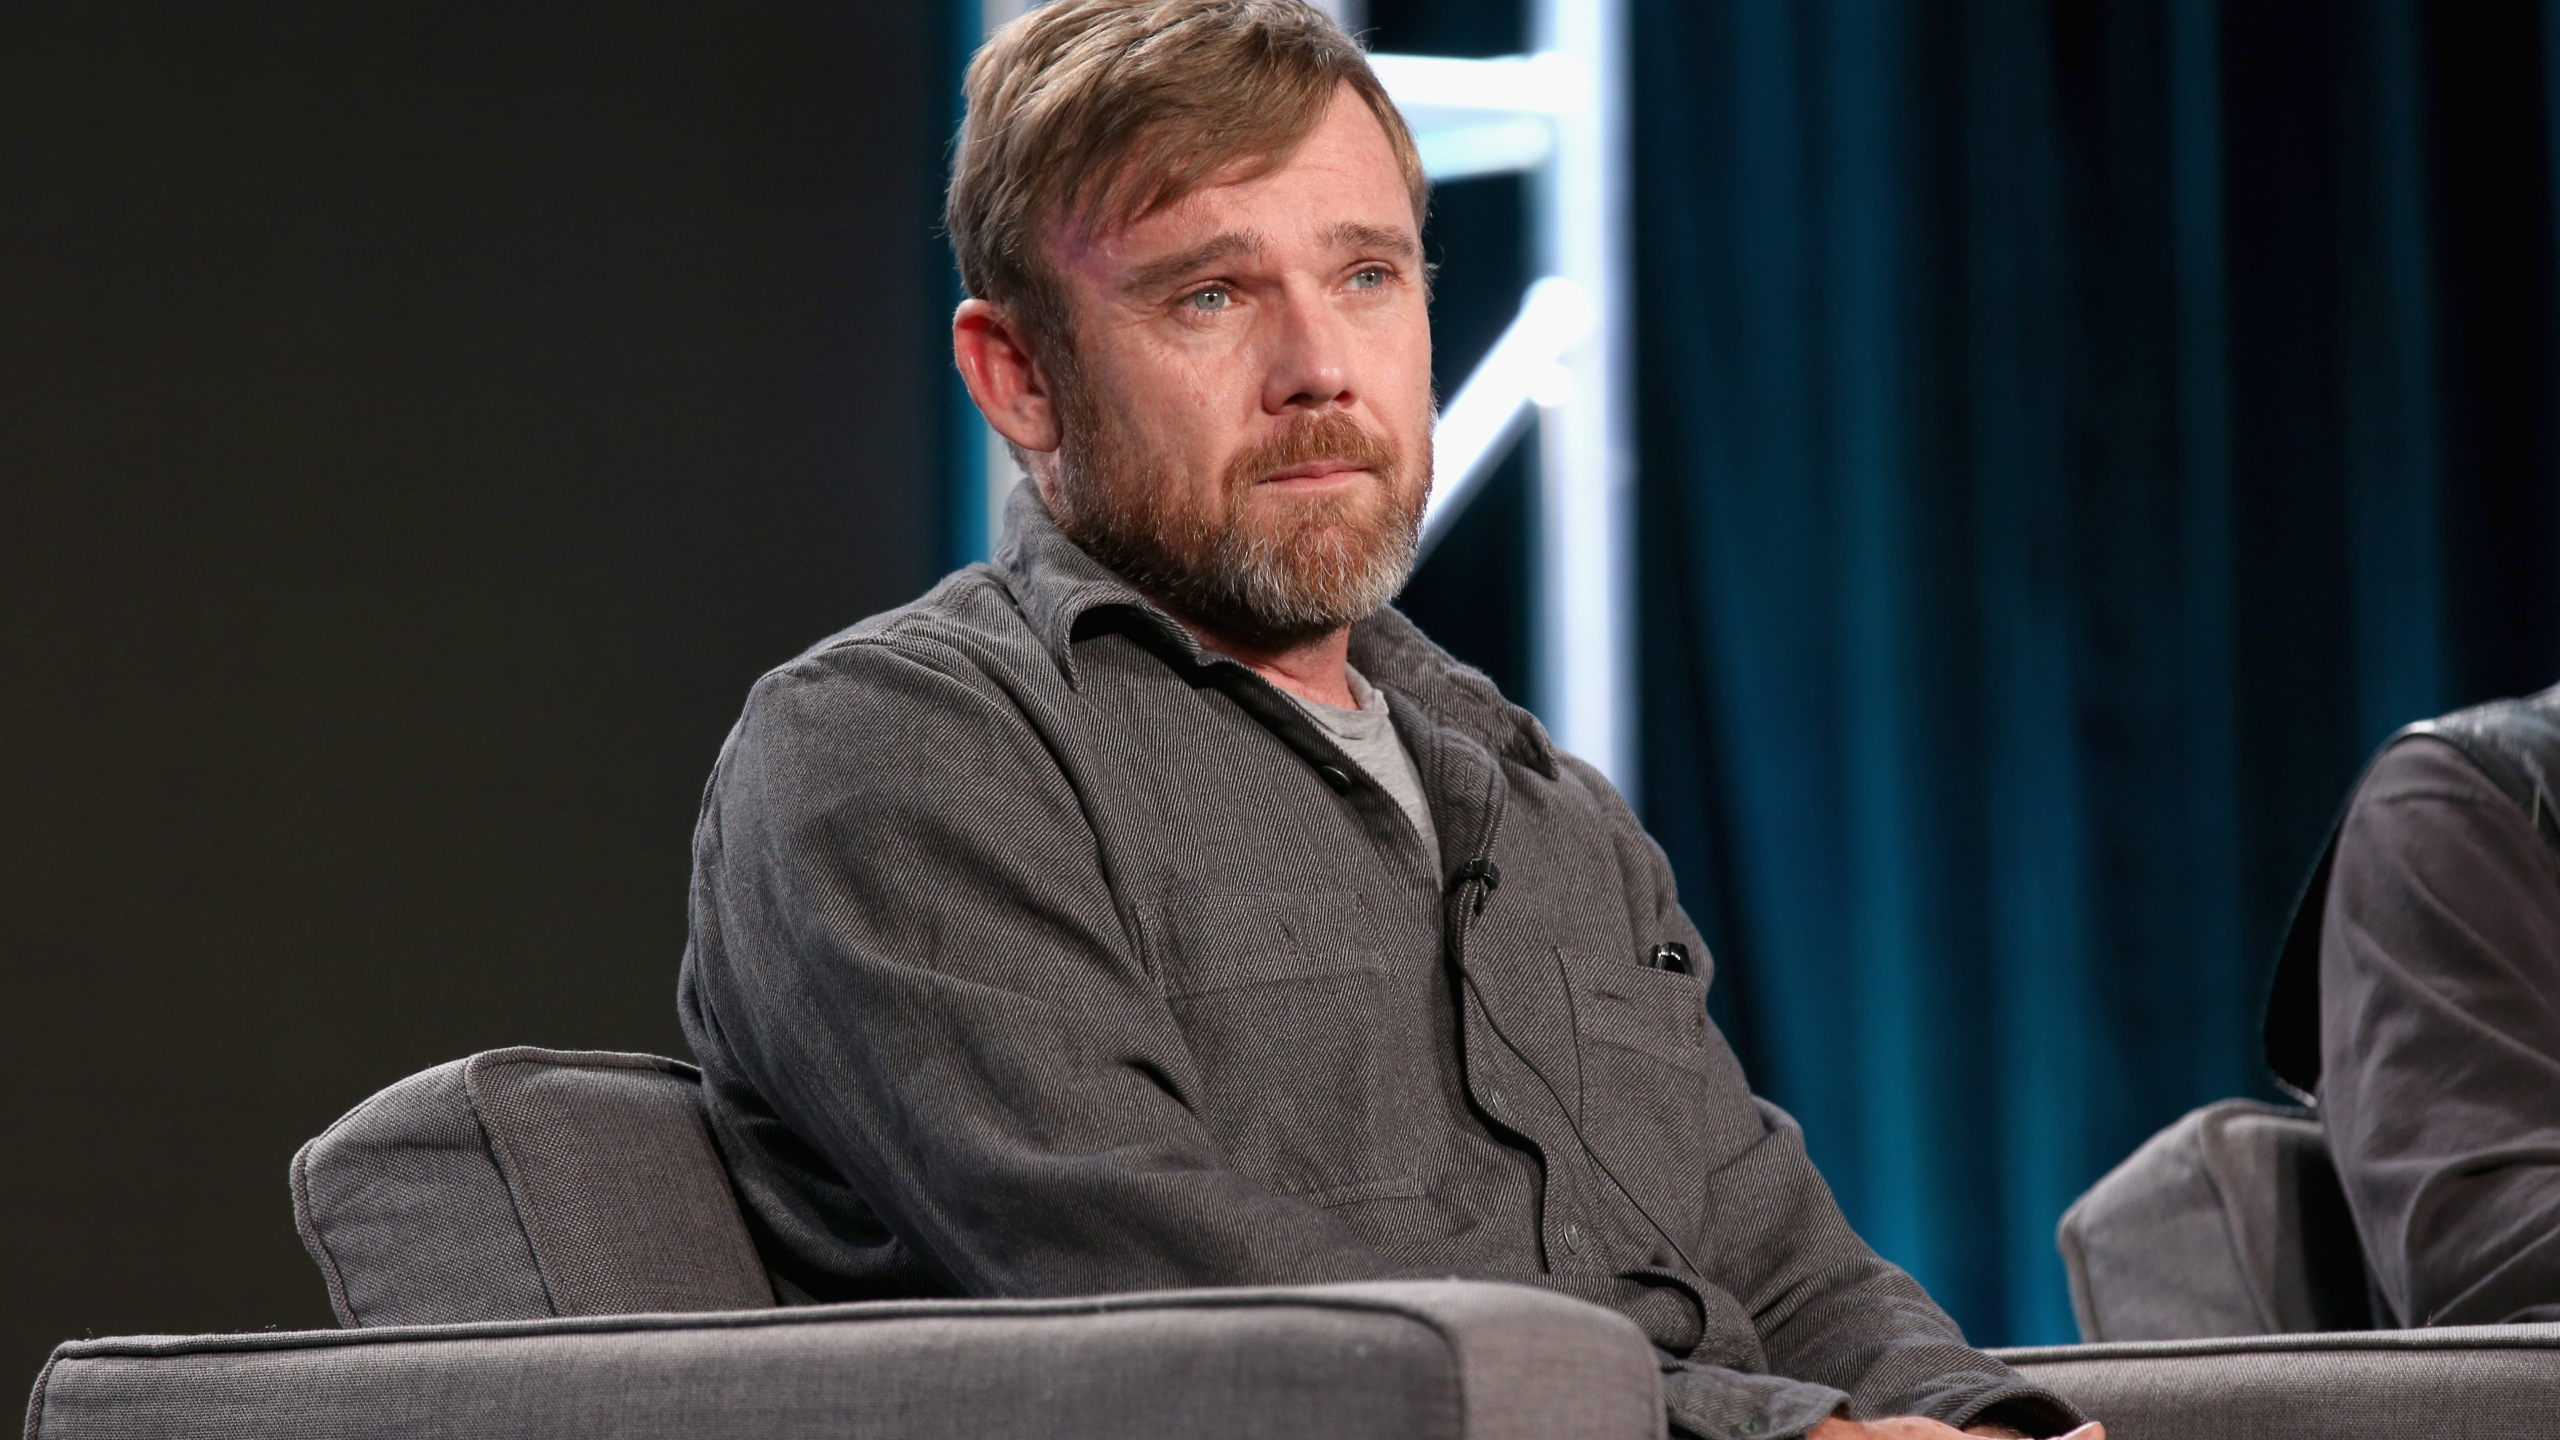 Executive producer Ricky Schroder of 'AUDIENCE Documentaries' speaks onstage during AT&T AUDIENCE Network Presents at 2017 Winter TCA at Langham Hotel on Jan. 5, 2017, in Pasadena. (Credit: Phillip Faraone/Getty Images for DIRECTV)